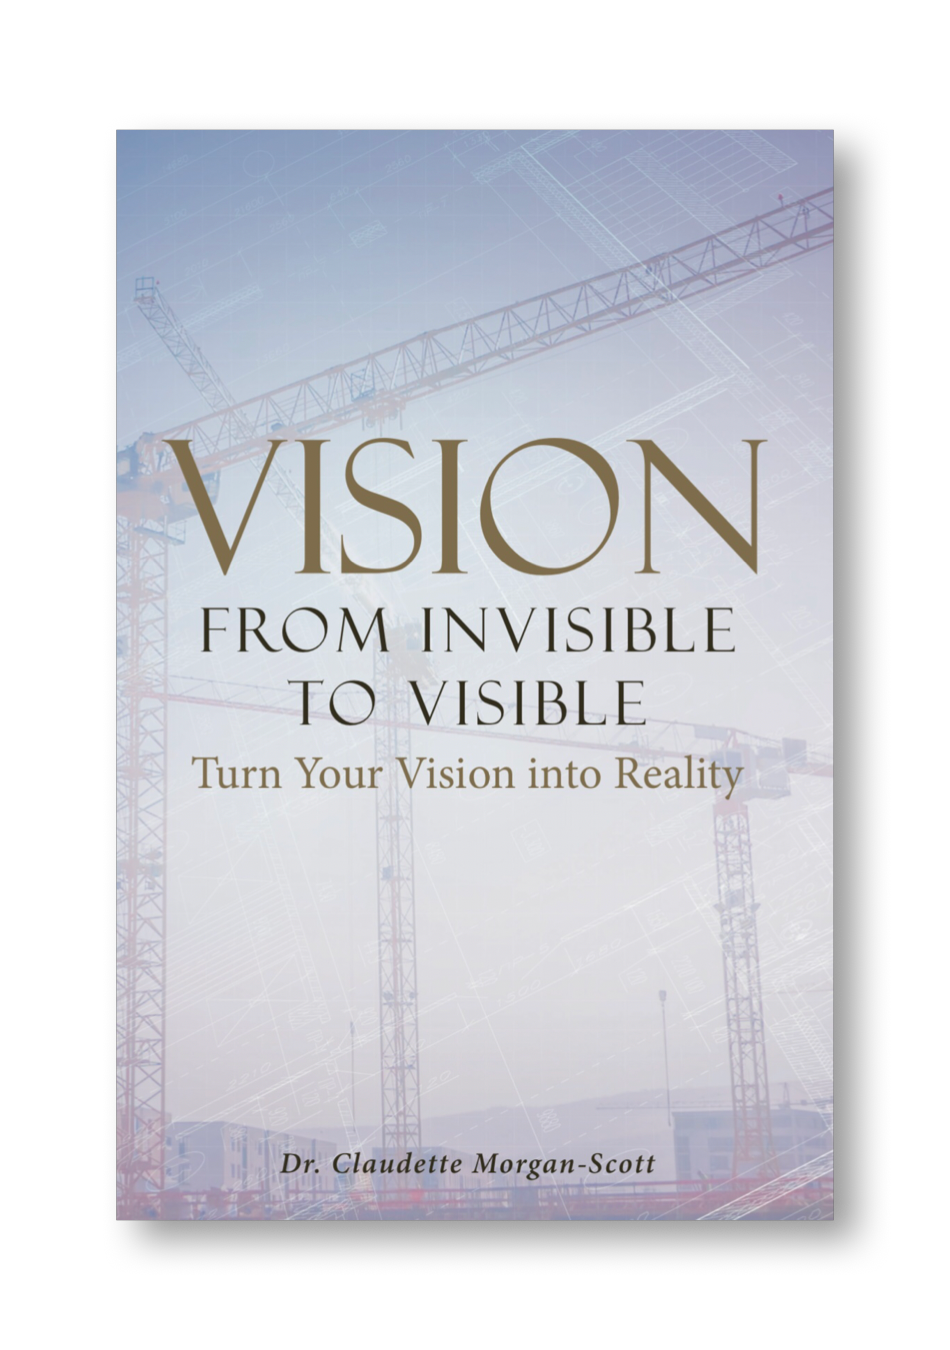 New Book: Vision From Invisible to Visible - This book is a must-have for leaders in every organization; corporate America, private firms, non-profit and faith-based organizations.